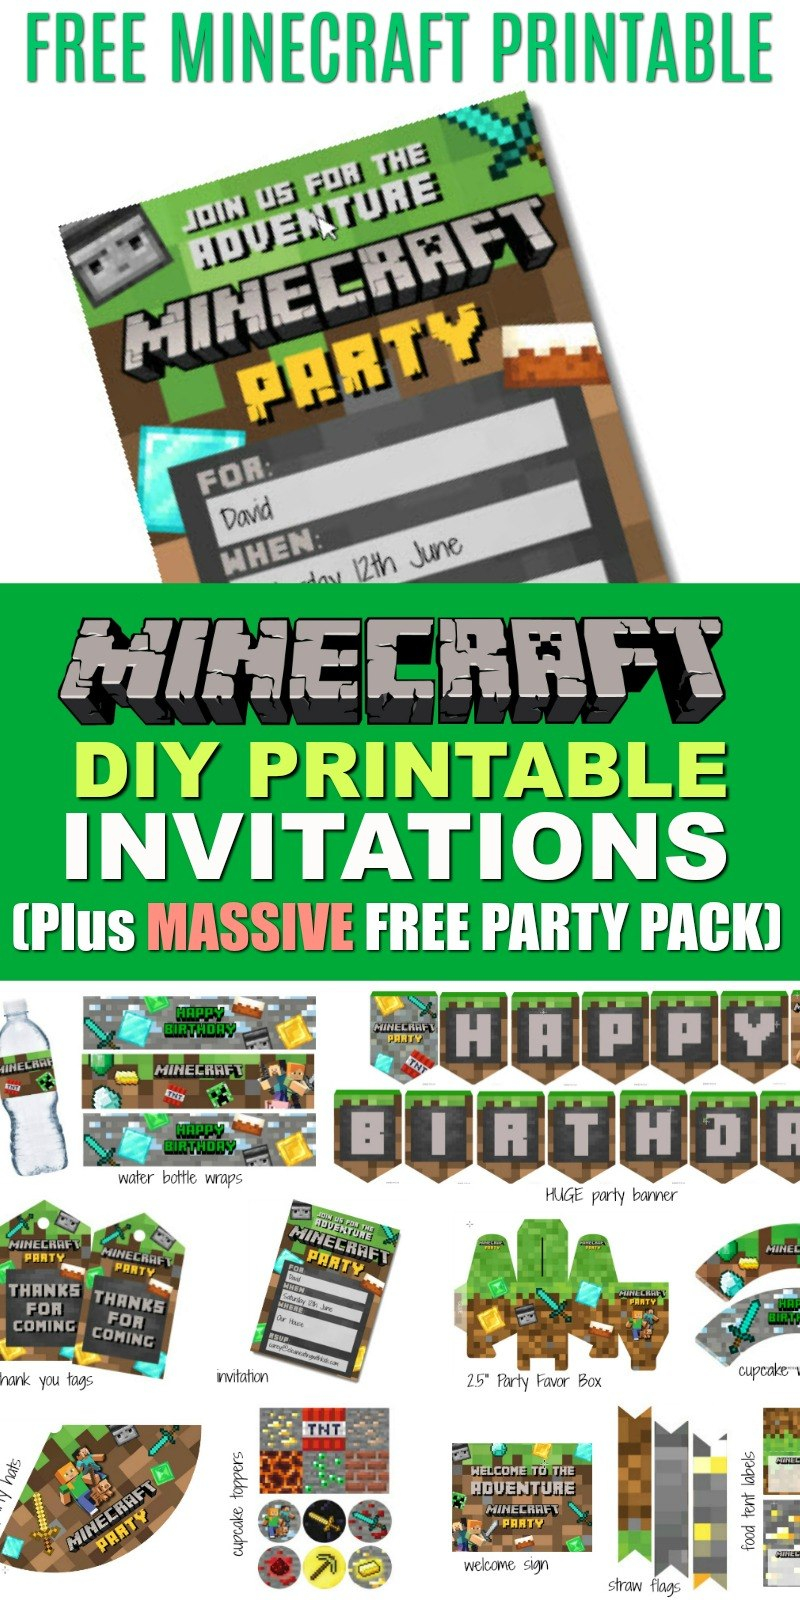 Free Diy Printable Minecraft Birthday Invitation  Clean Eating With Pertaining To Minecraft Birthday Card Template